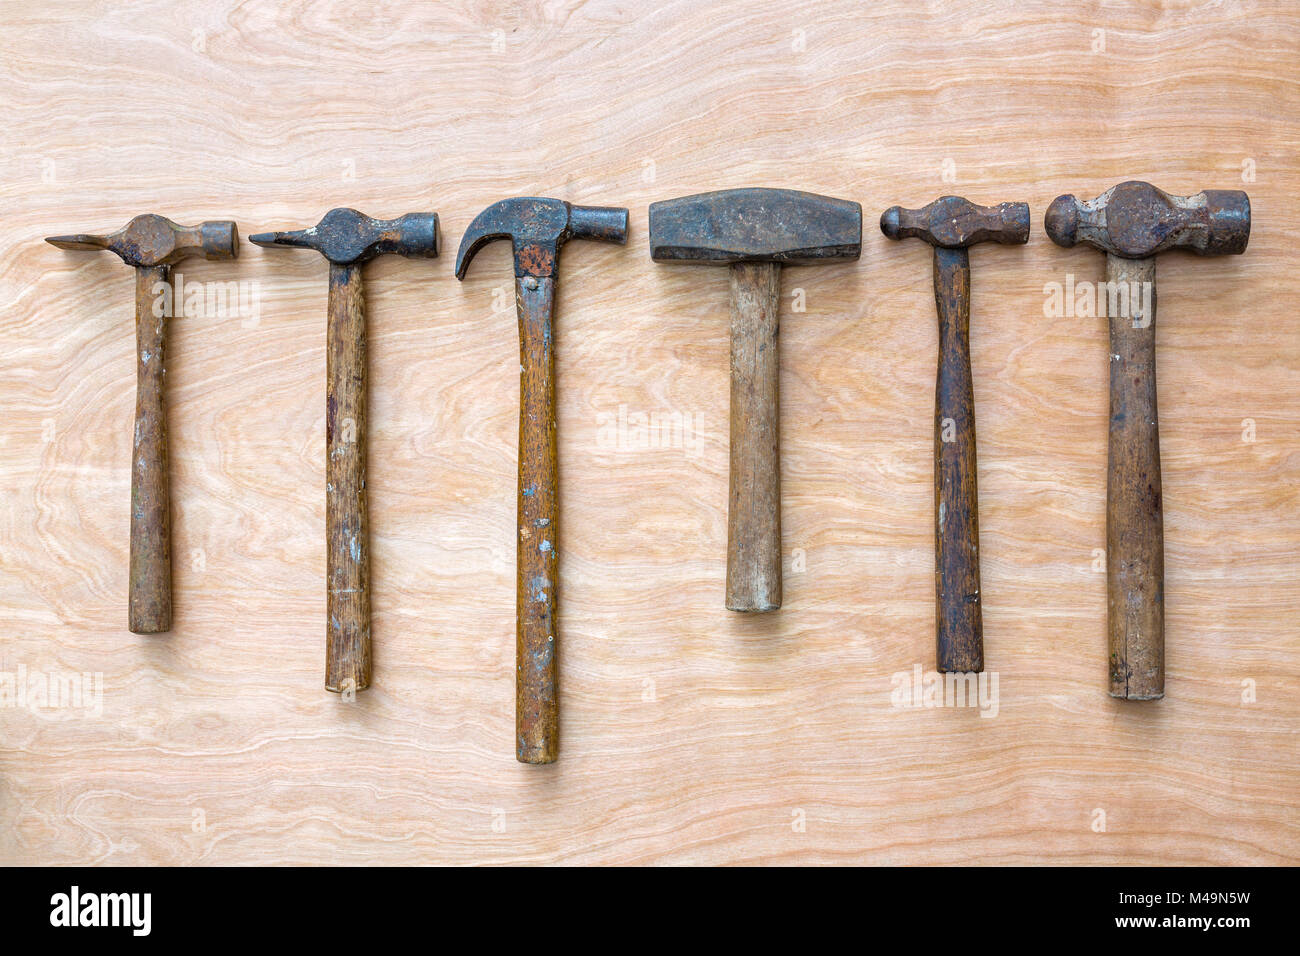 A collection of old hammers - Stock Image